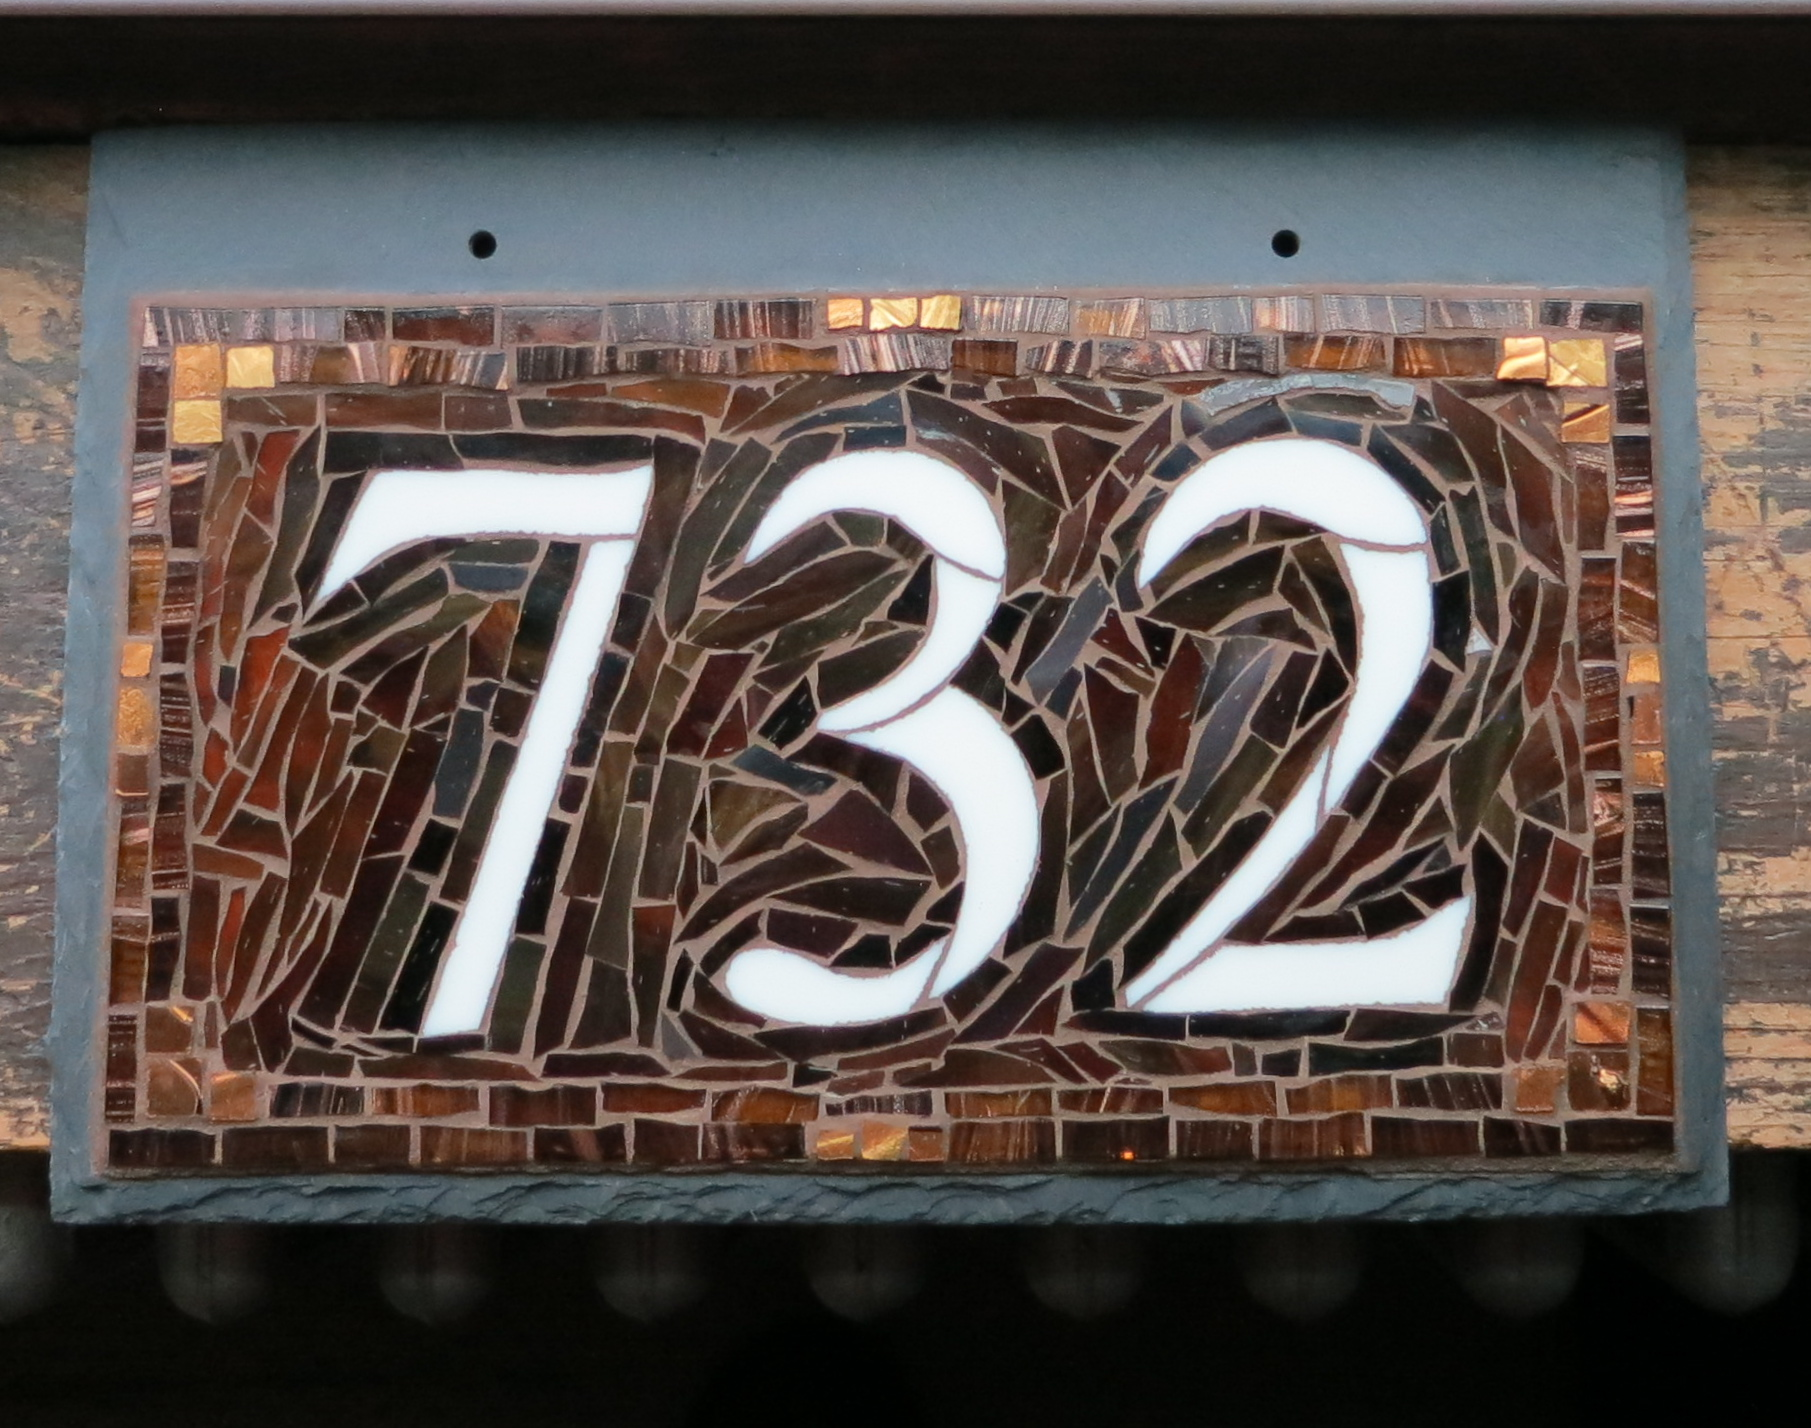 732 in Chocolate